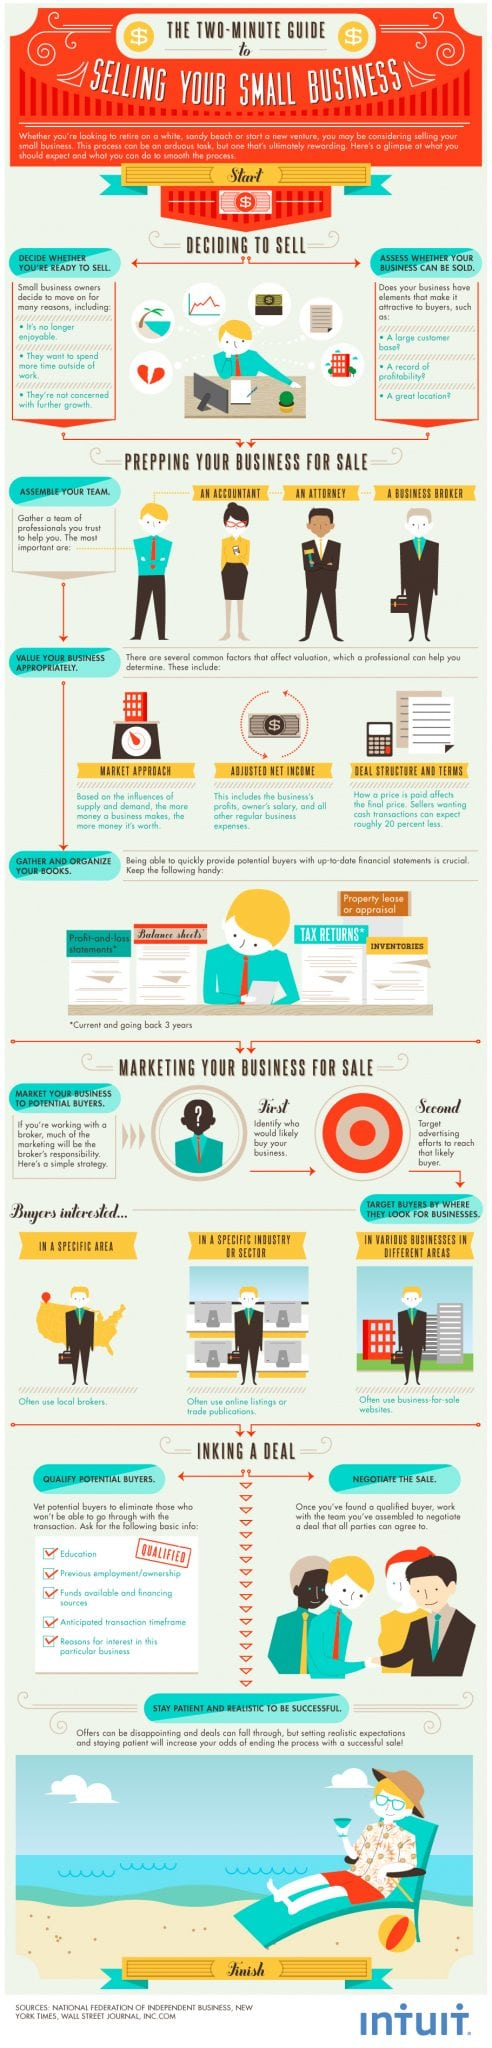 Photo of The Two-Minute Guide to Selling Your Small Business [INFOGRAPHIC]